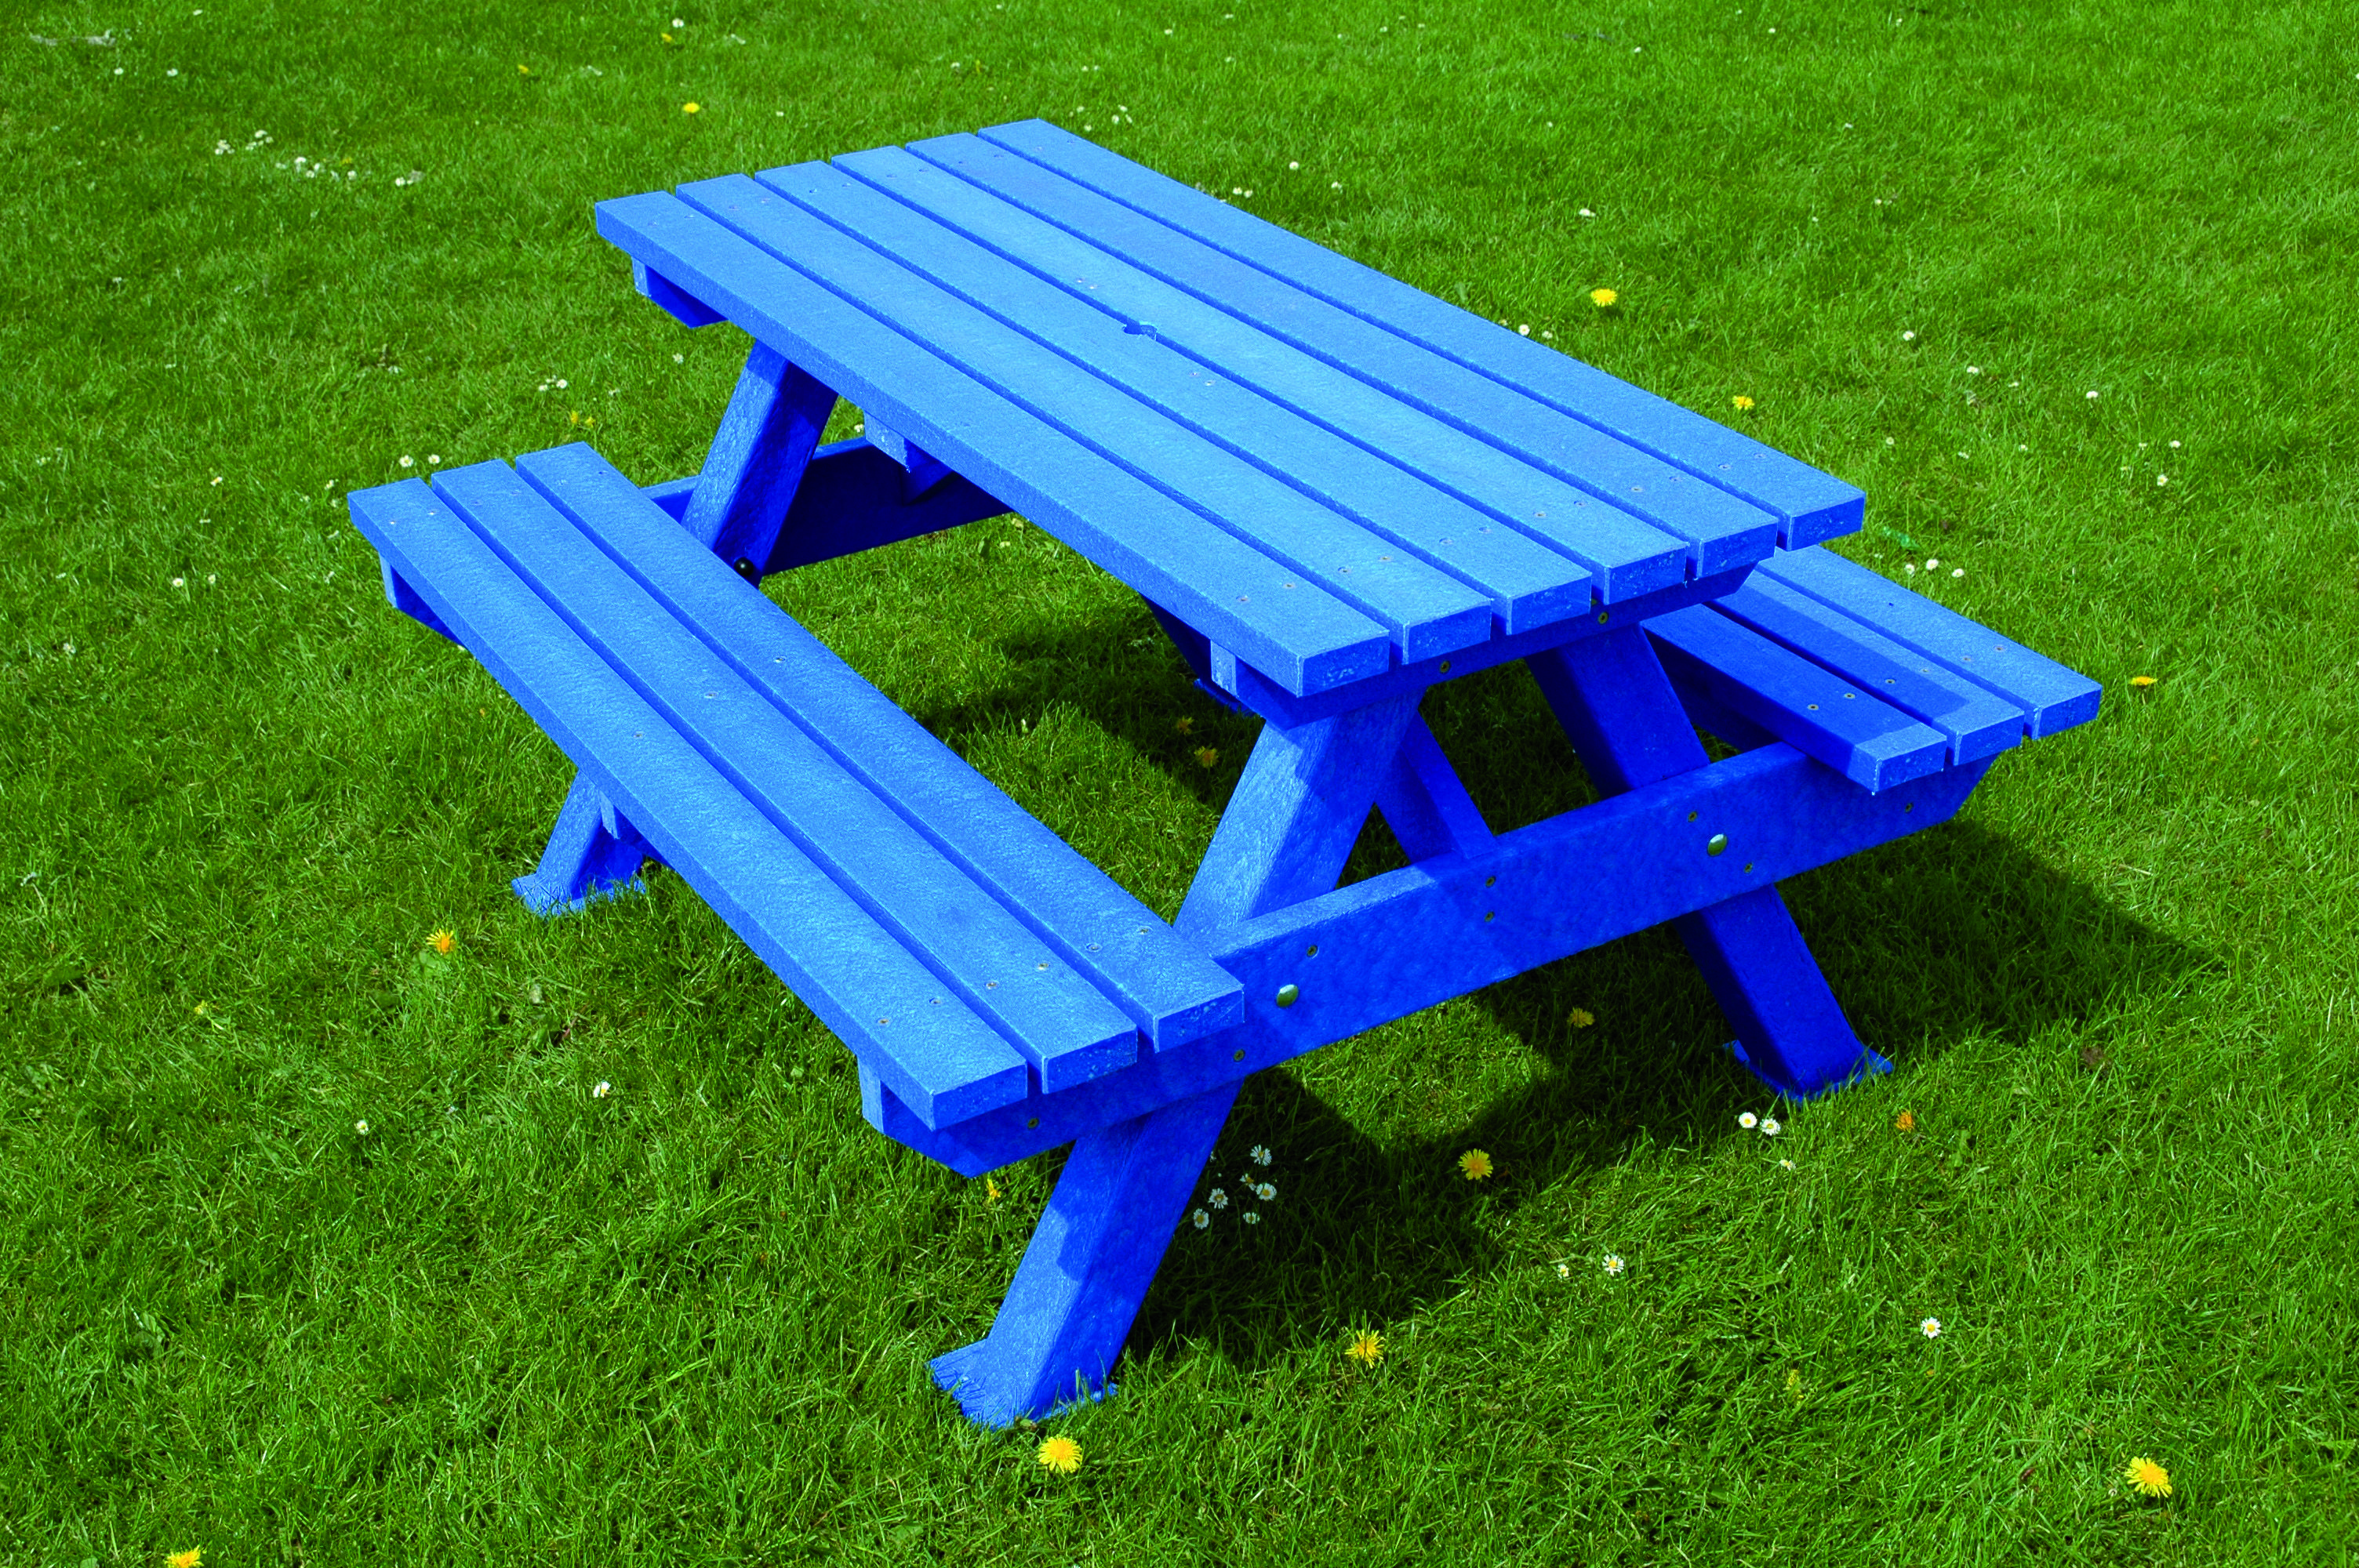 Heavyduty Picnicbench Blue Available From Procter Street Furniture At Https Www Procterstreetfurniture C Picnic Bench Picnic Table Plastic Picnic Tables